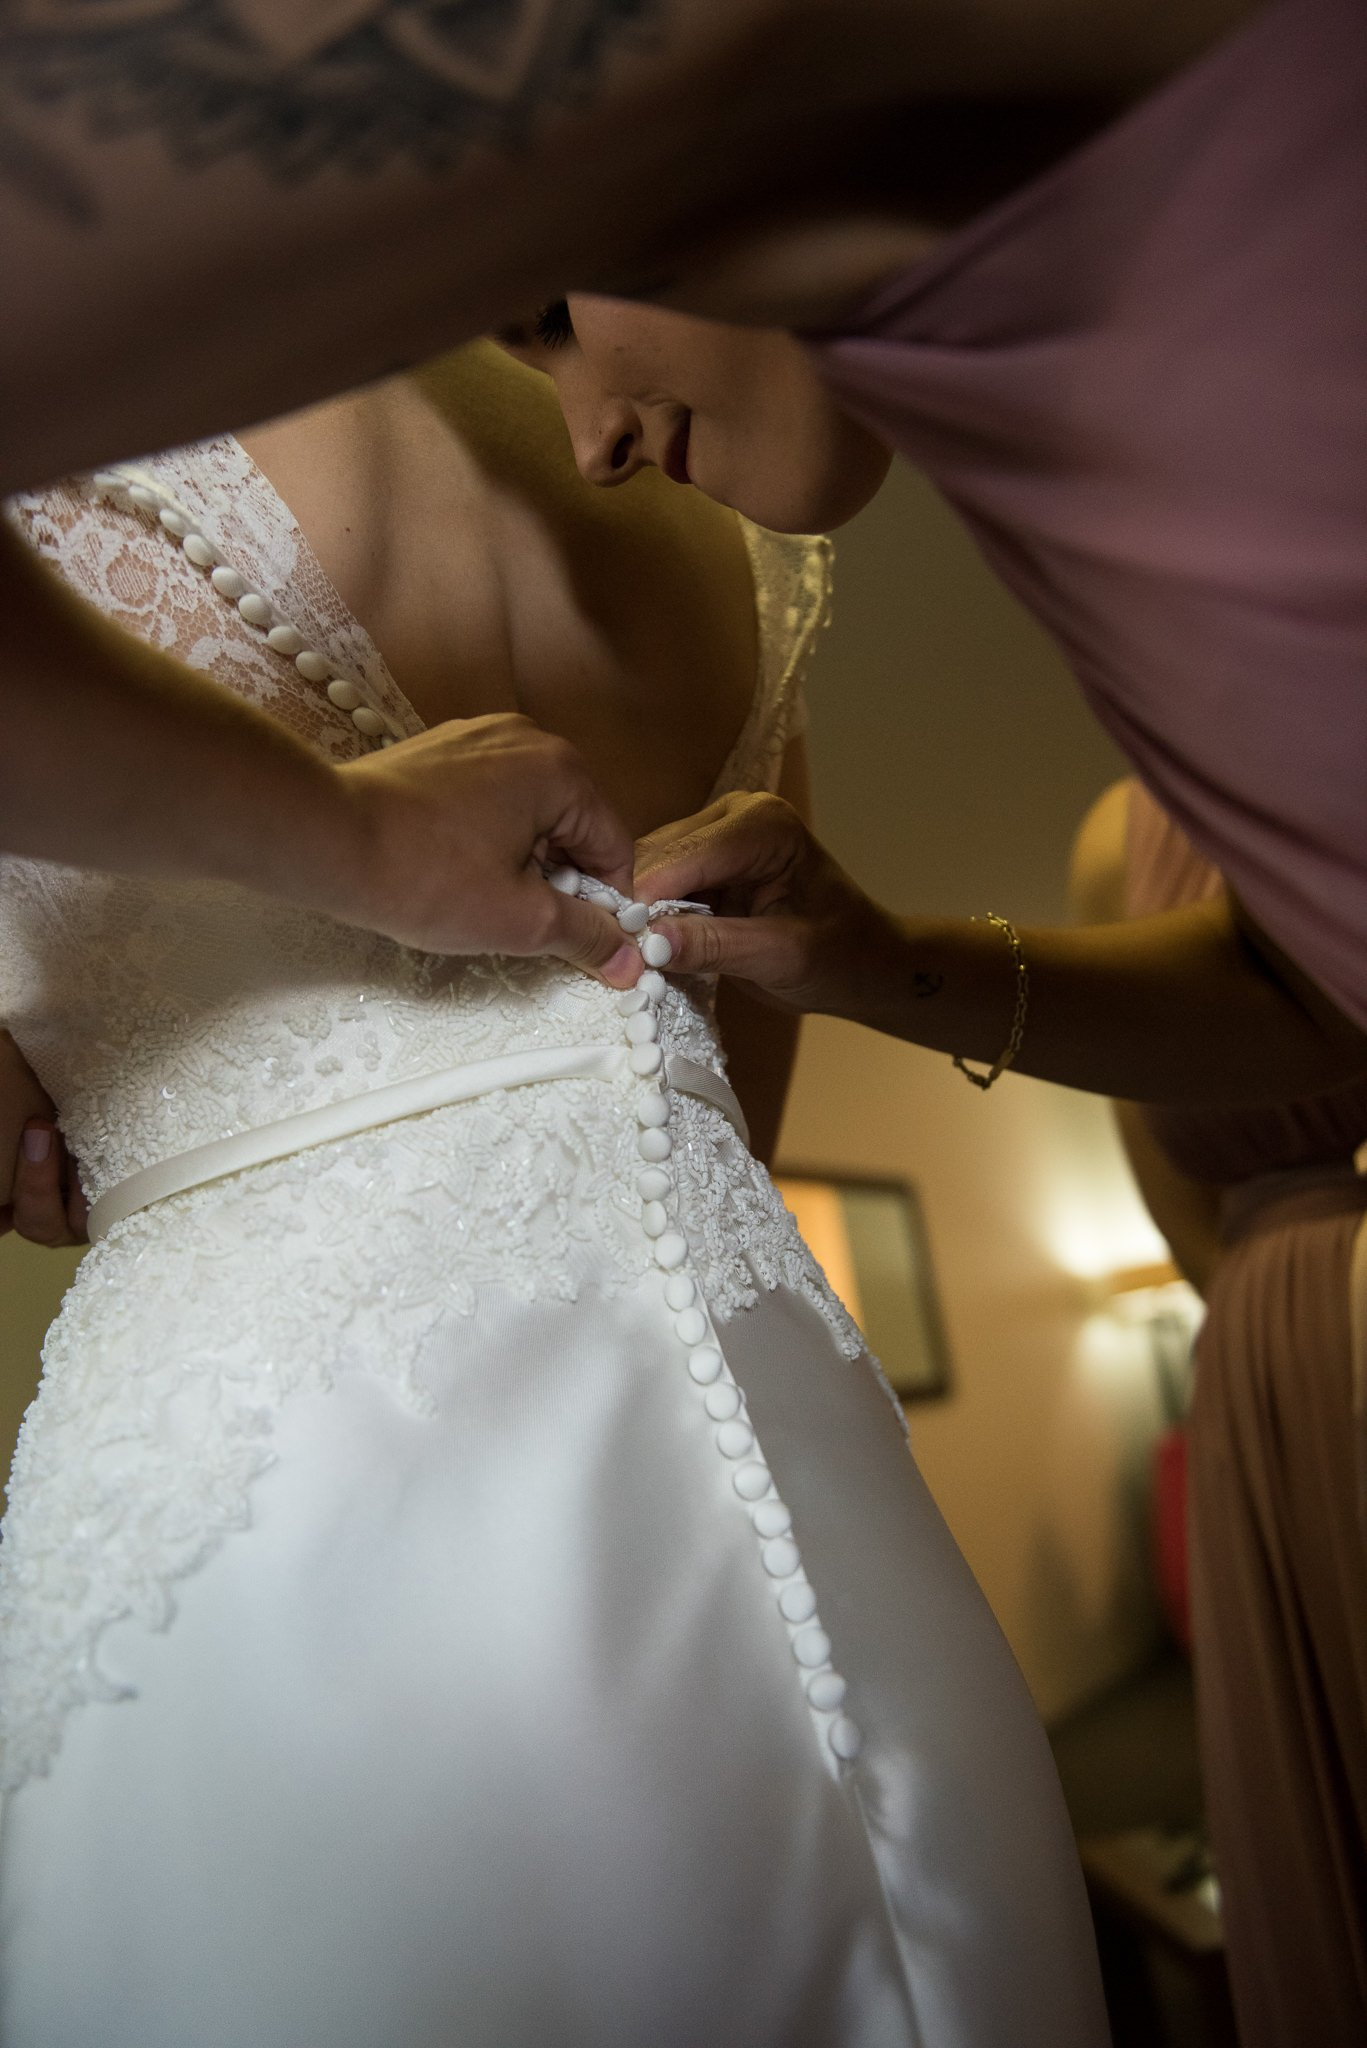 back of wedding dress getting buttoned